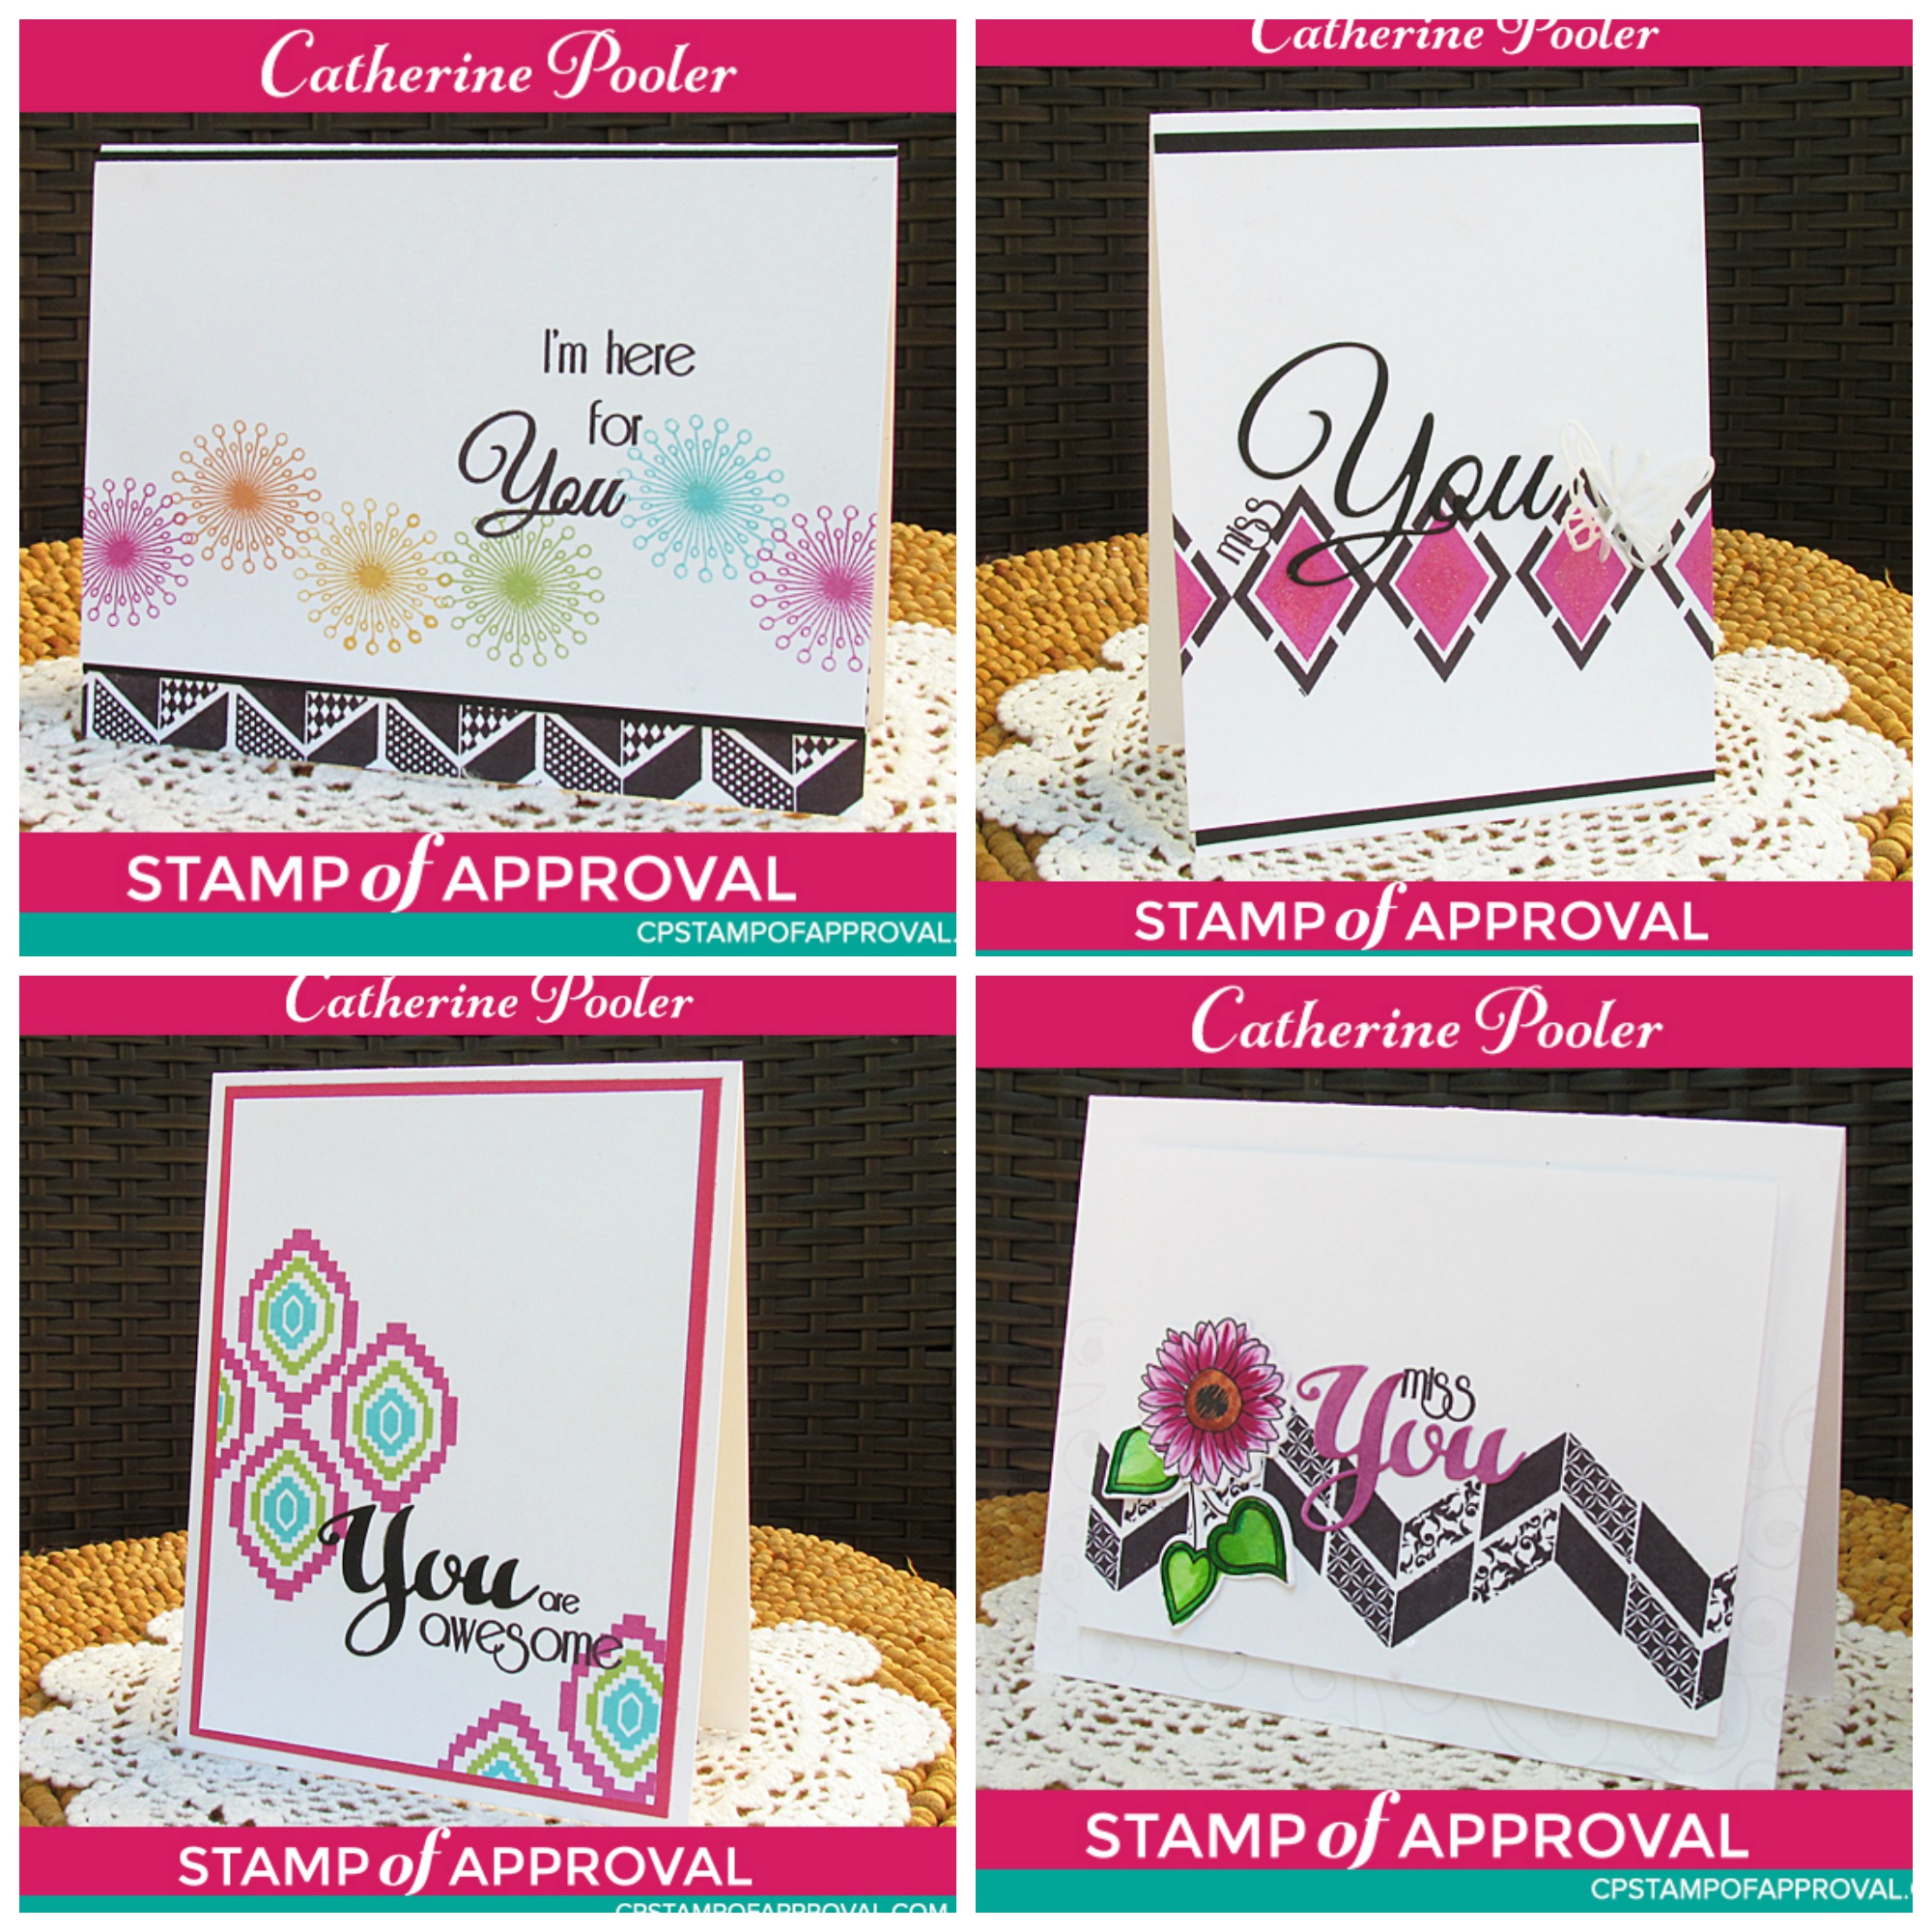 Catherine Pooler Designs Stamp of Approval